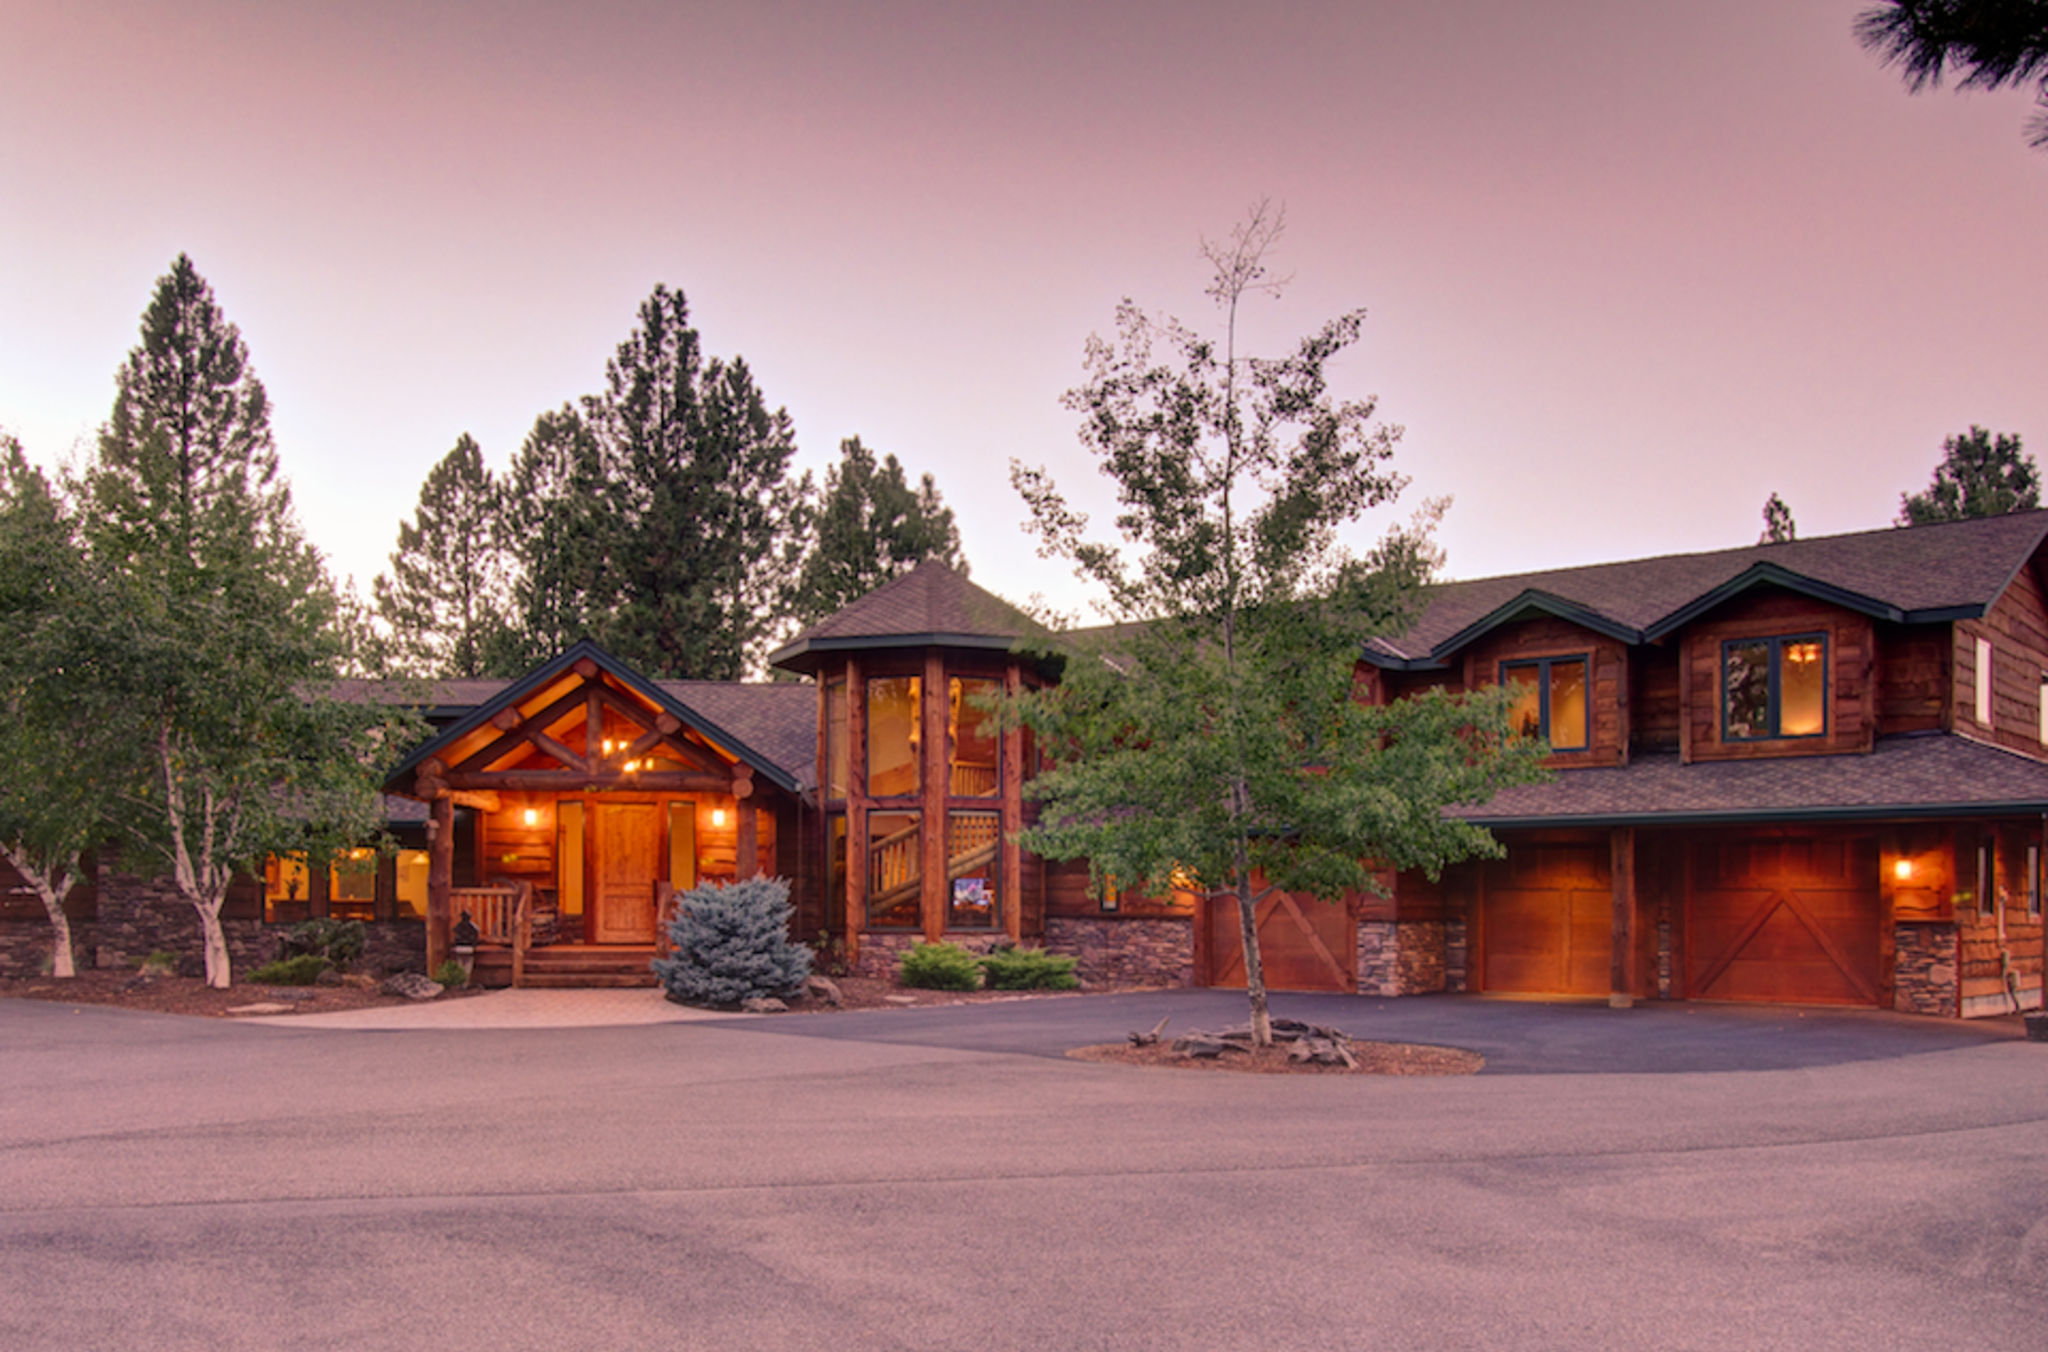 Front of lodge at twilight